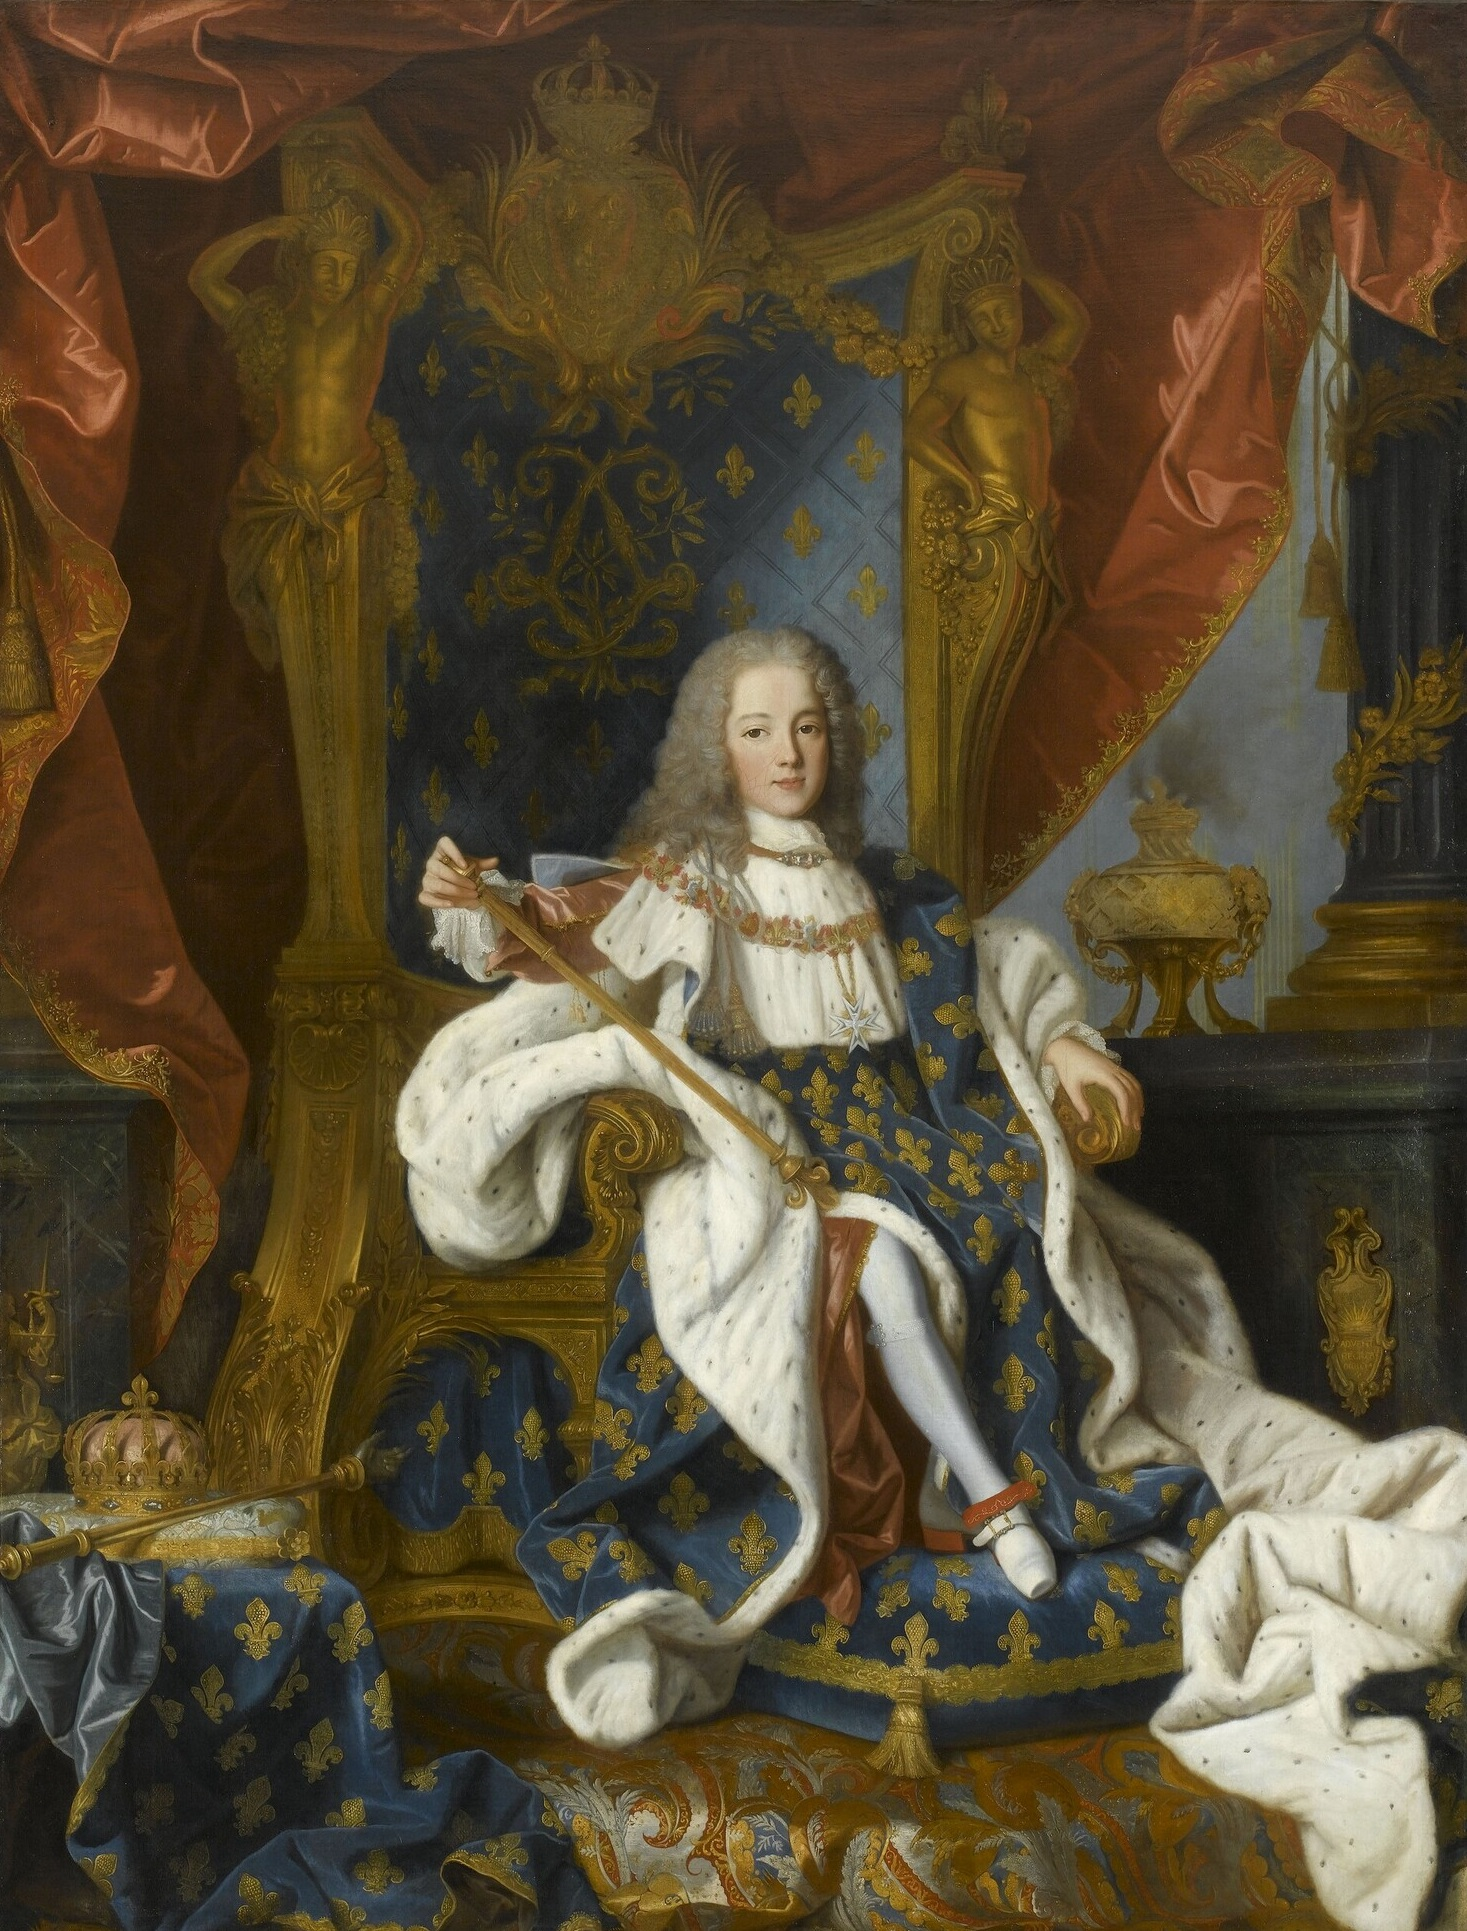 File:LOUIS XV Ranc 2.jpg - Wikimedia Commons